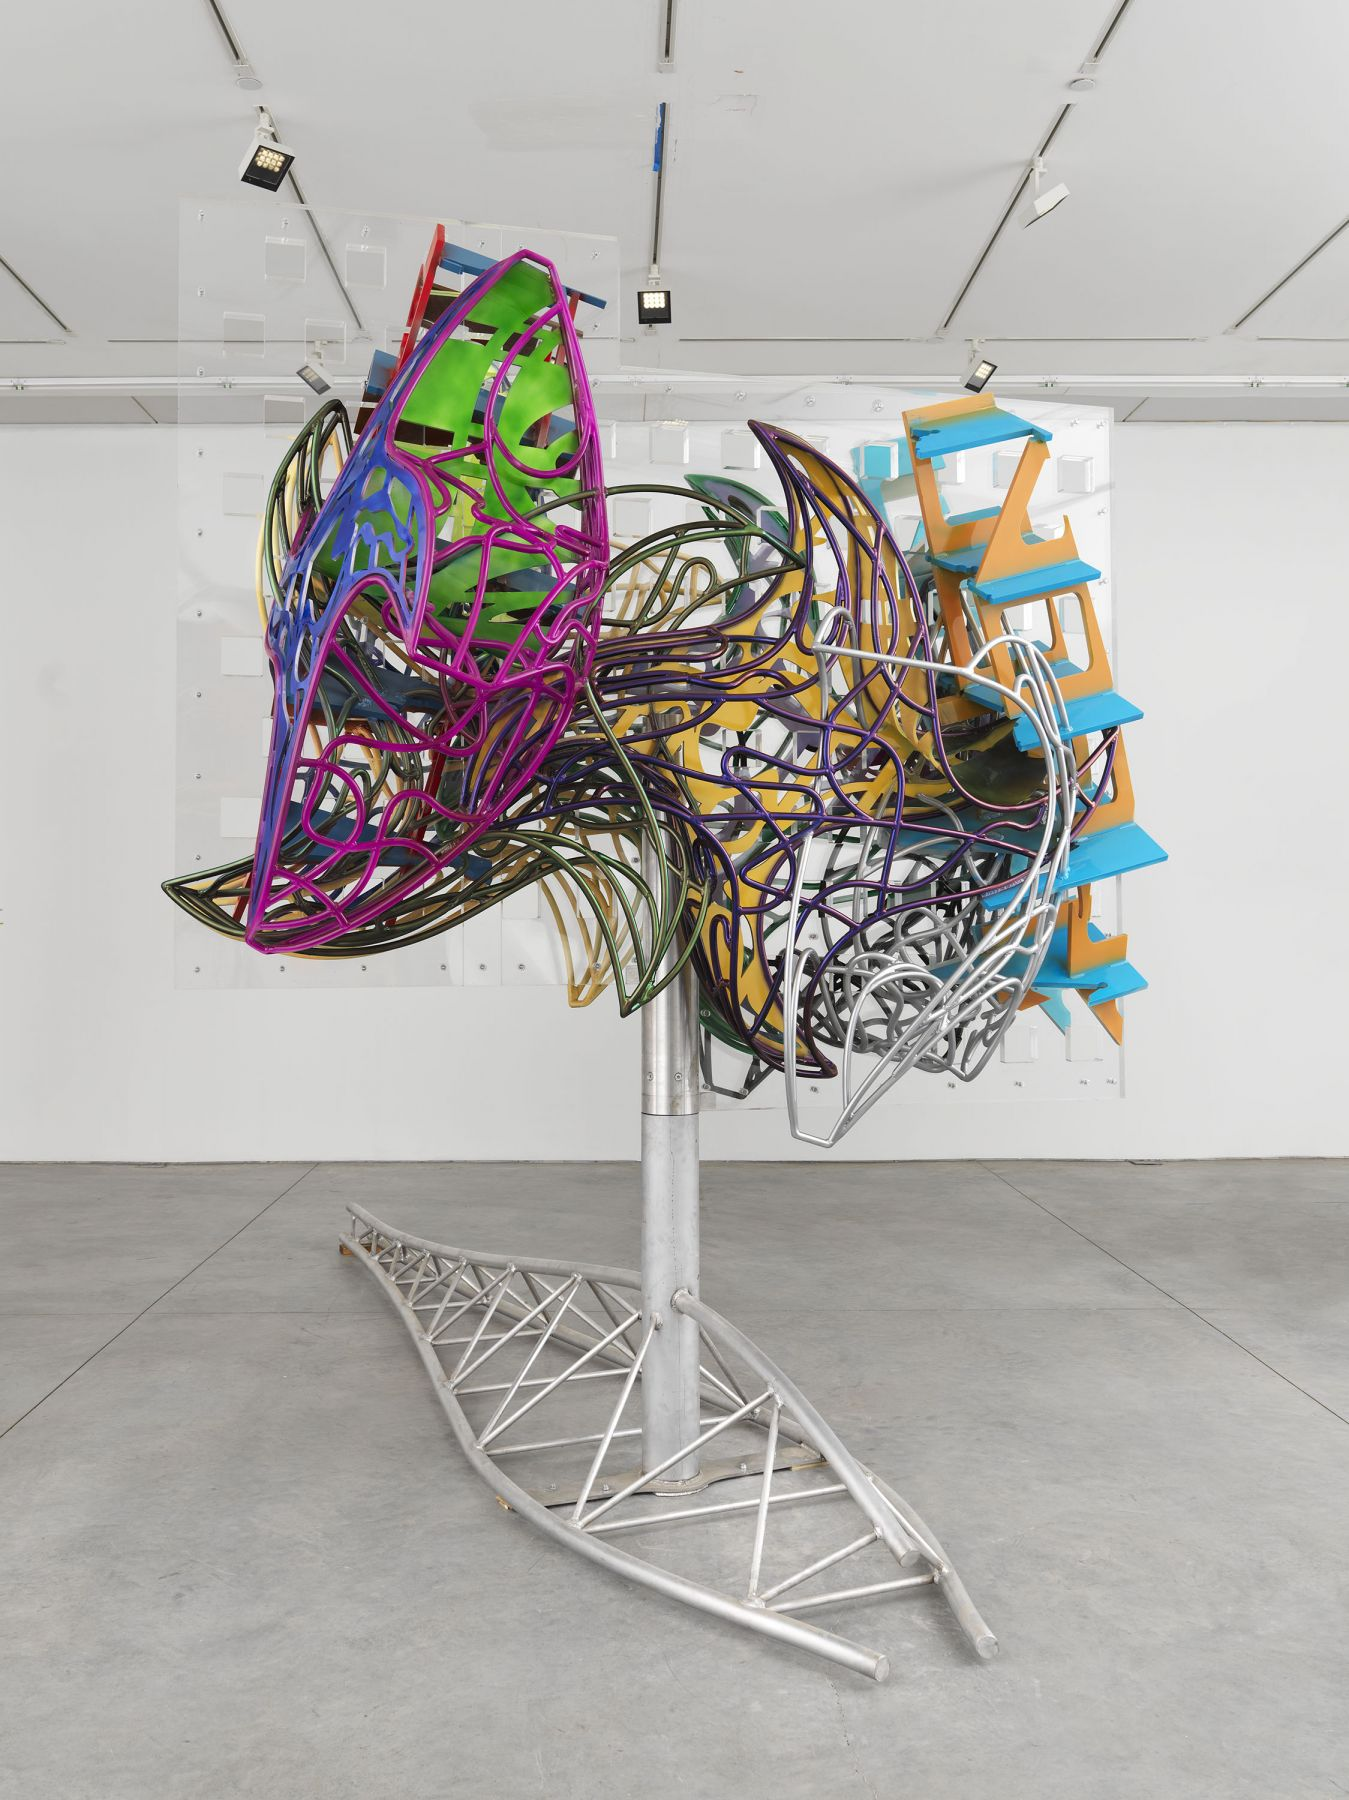 A large kinetic moving sculpture by frank stella available to buy in the gallery